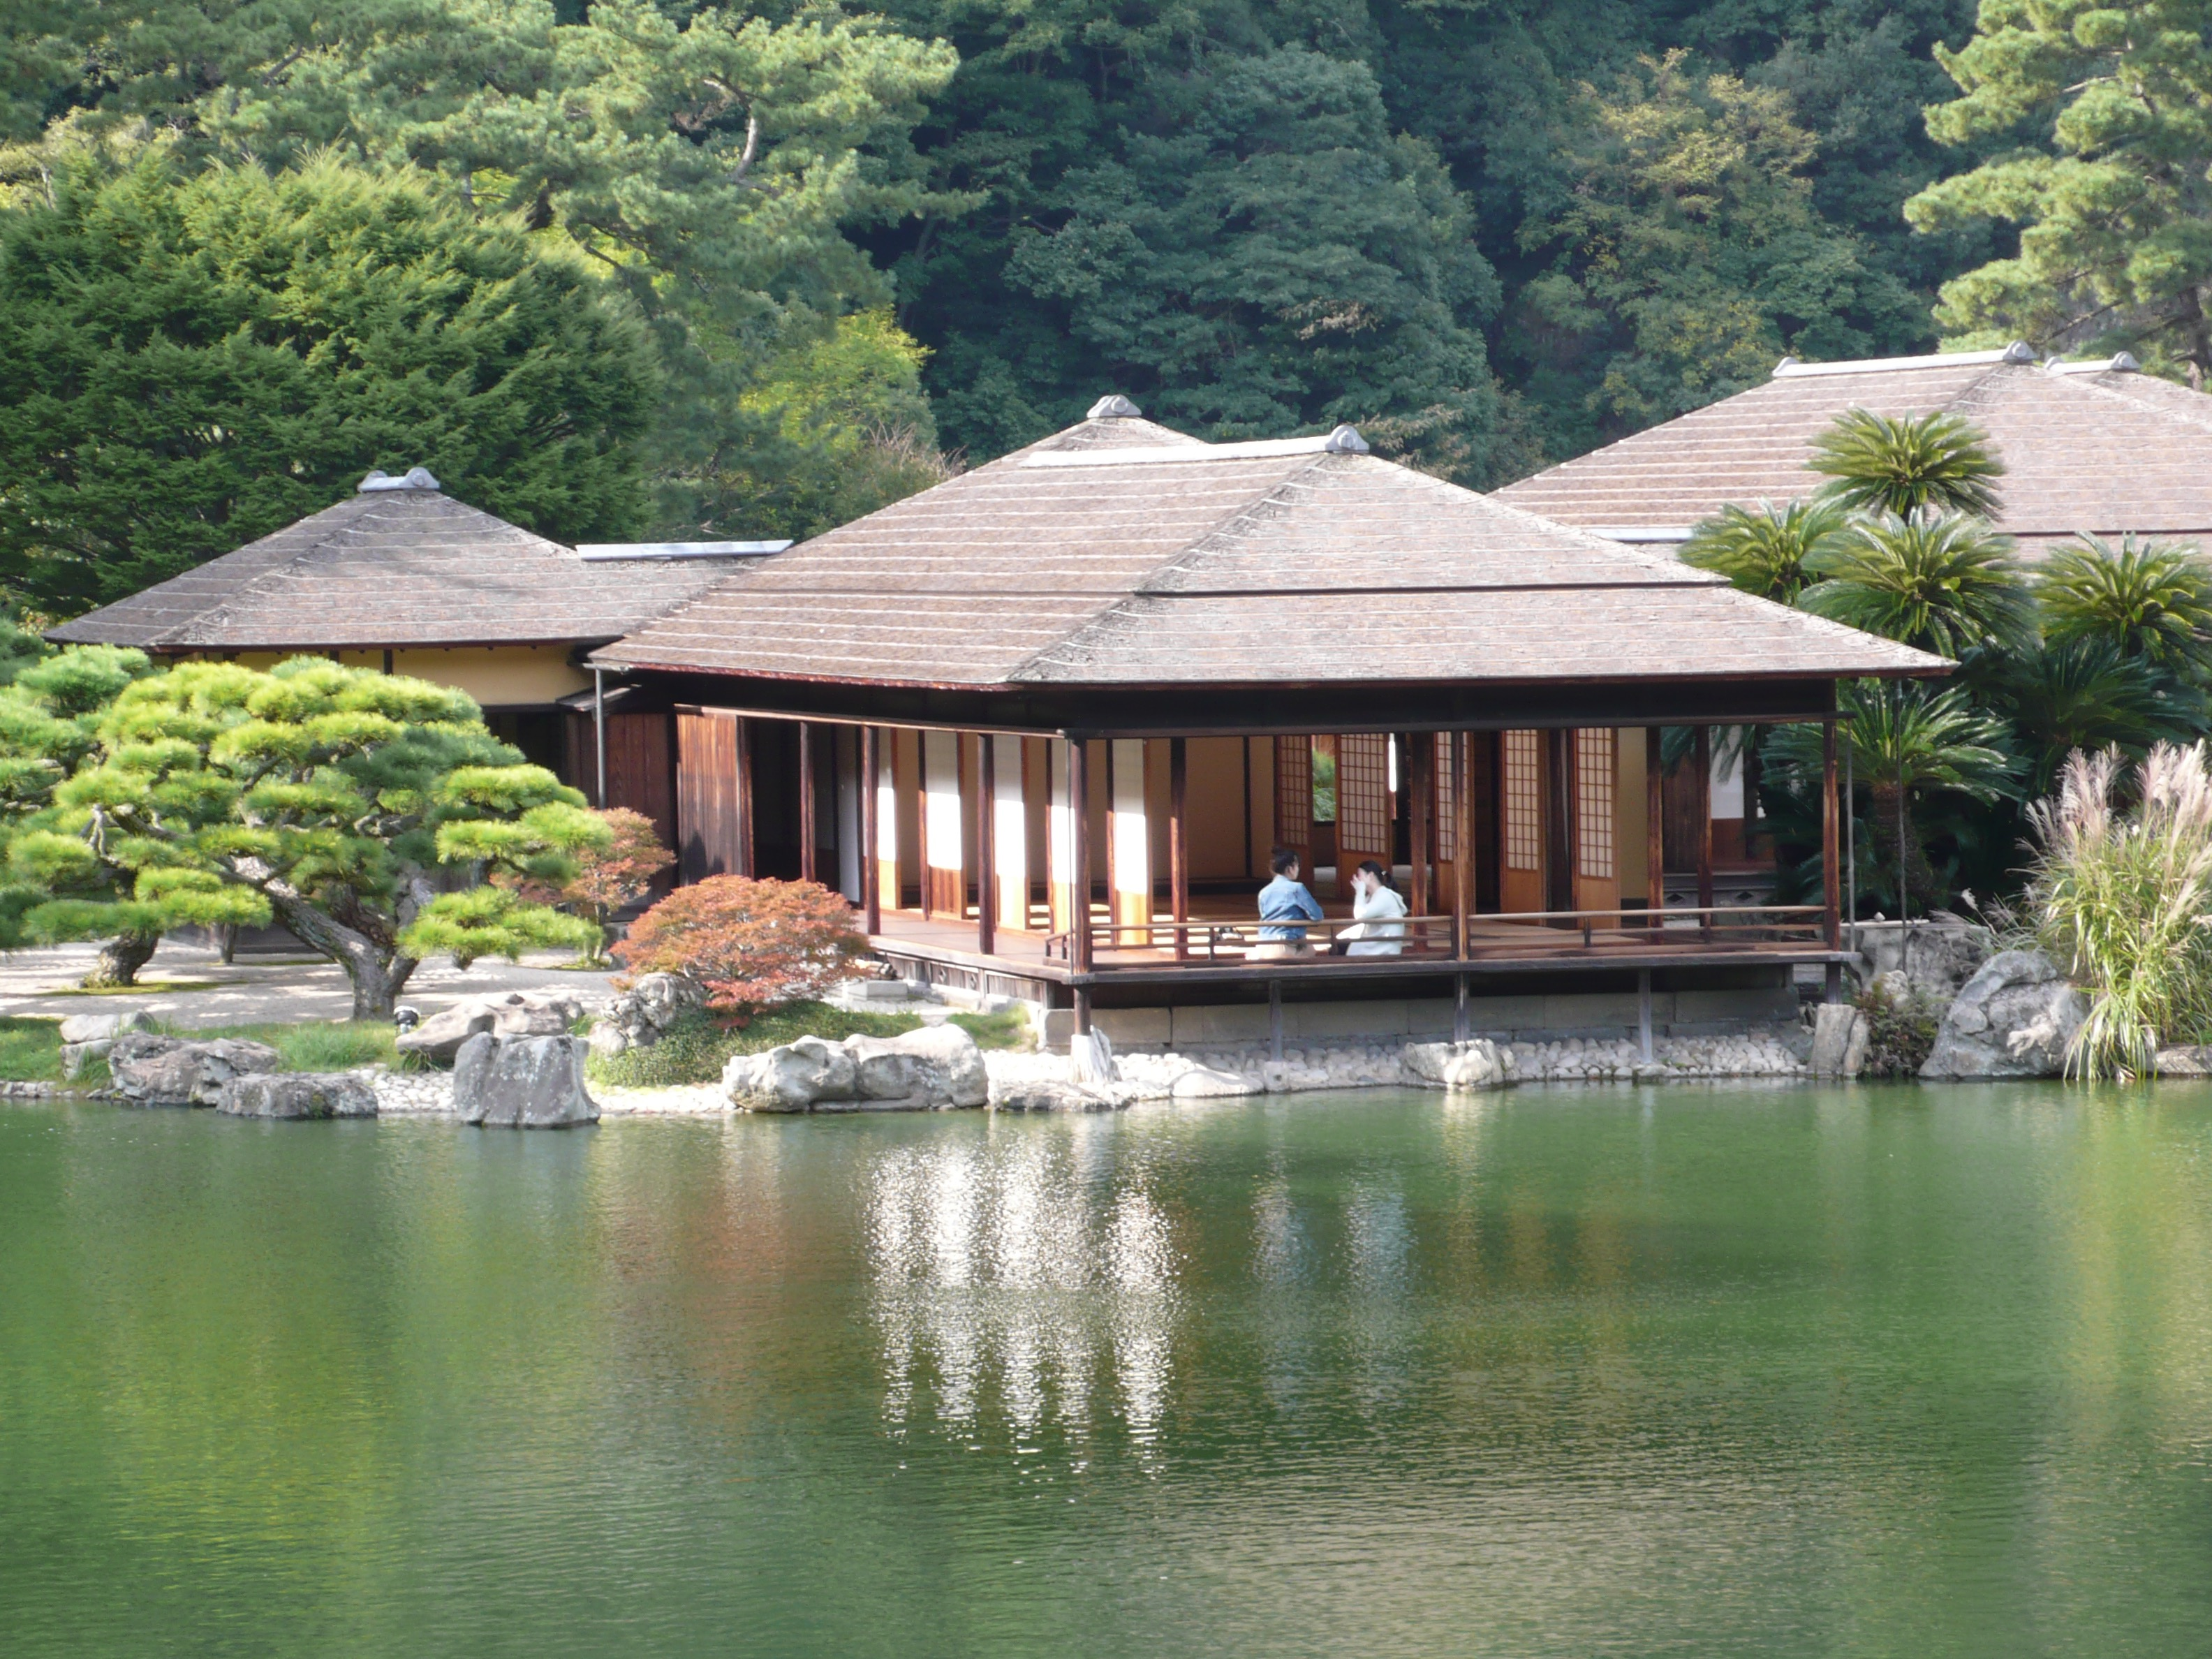 A tea house reflected in the water.  What I love about this tea house are the two people enjoying their tea.